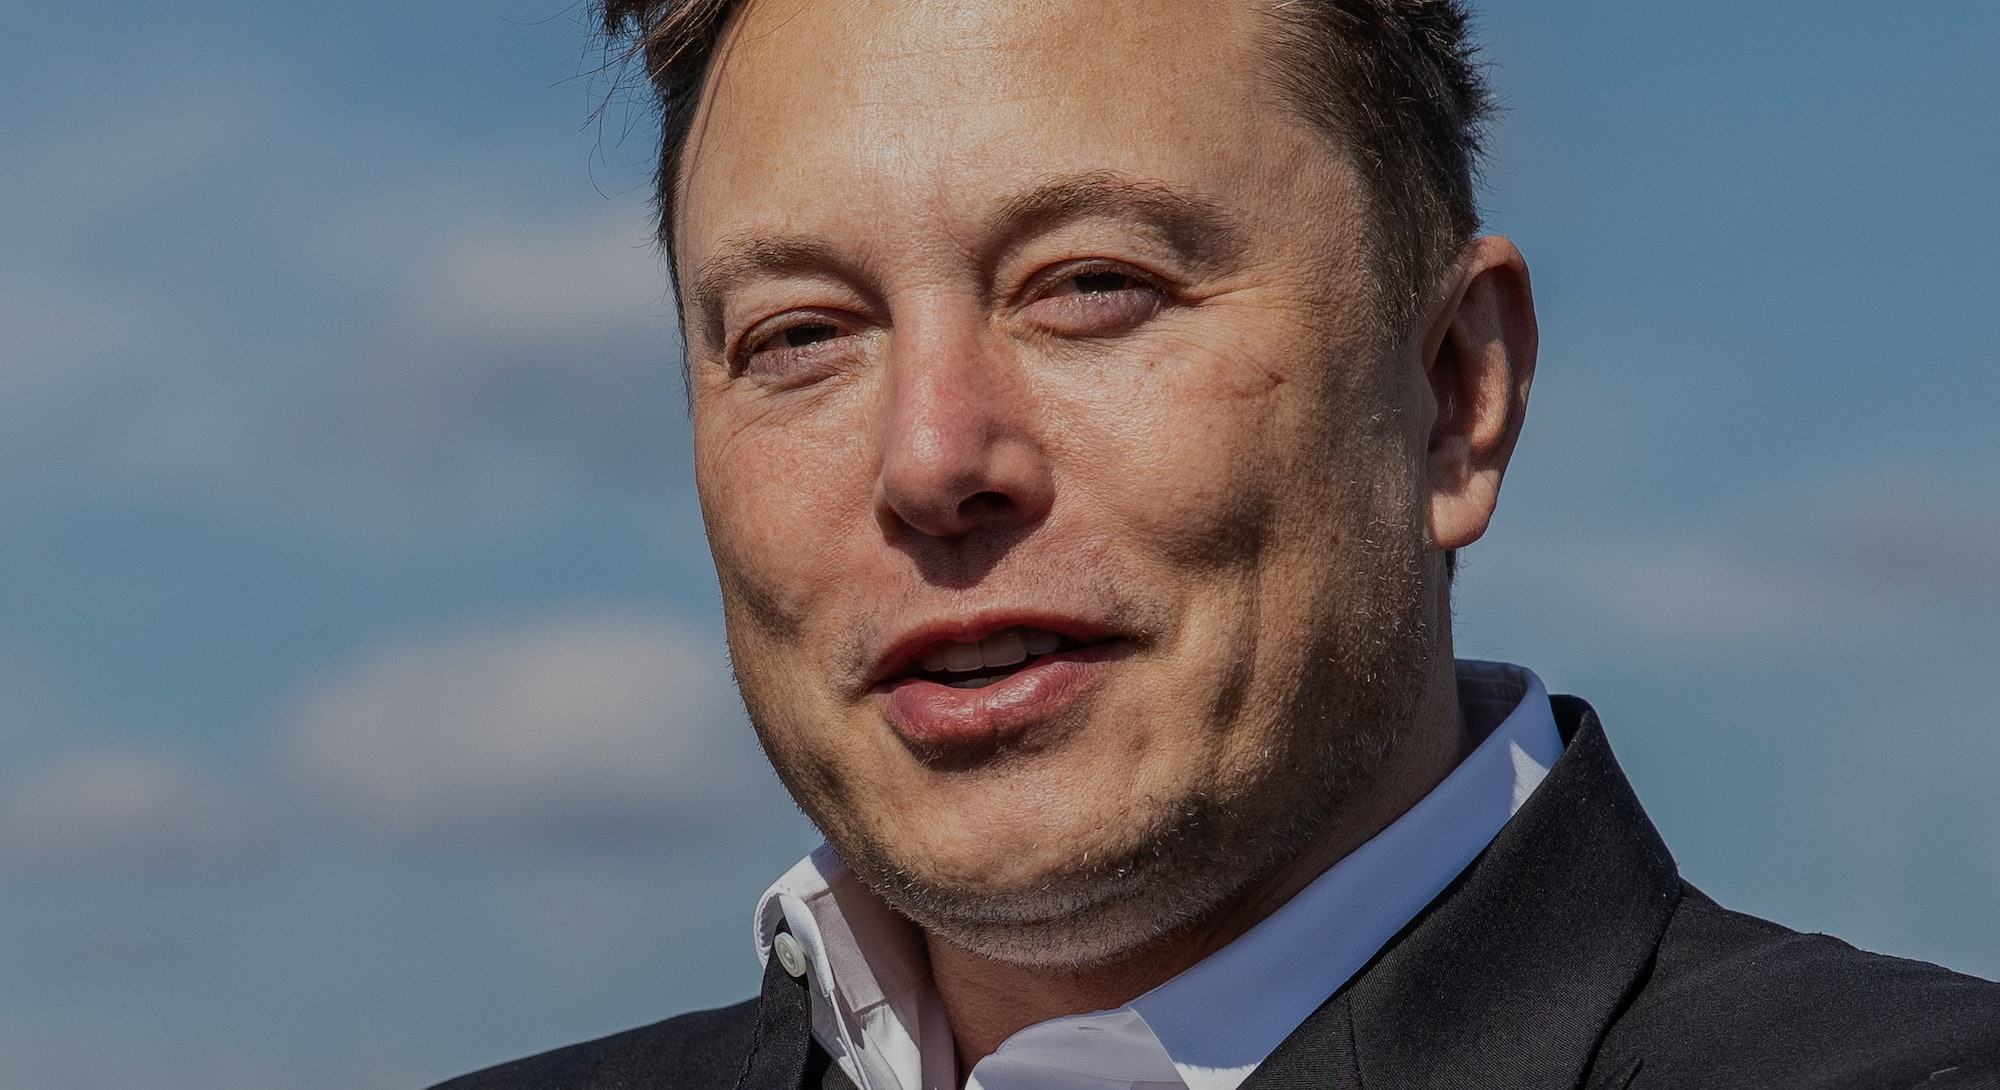 FUERSTENWALDE, GERMANY - SEPTEMBER 03: Tesla head Elon Musk arrives to have a look at the construction site of the new Tesla Gigafactory near Berlin on September 03, 2020 near Gruenheide, Germany. Musk is currently in Germany where he met with vaccine maker CureVac on Tuesday, with which Tesla has a cooperation to build devices for producing RNA vaccines, as well as German Economy Minister Peter Altmaier yesterday. (Photo by Maja Hitij/Getty Images)